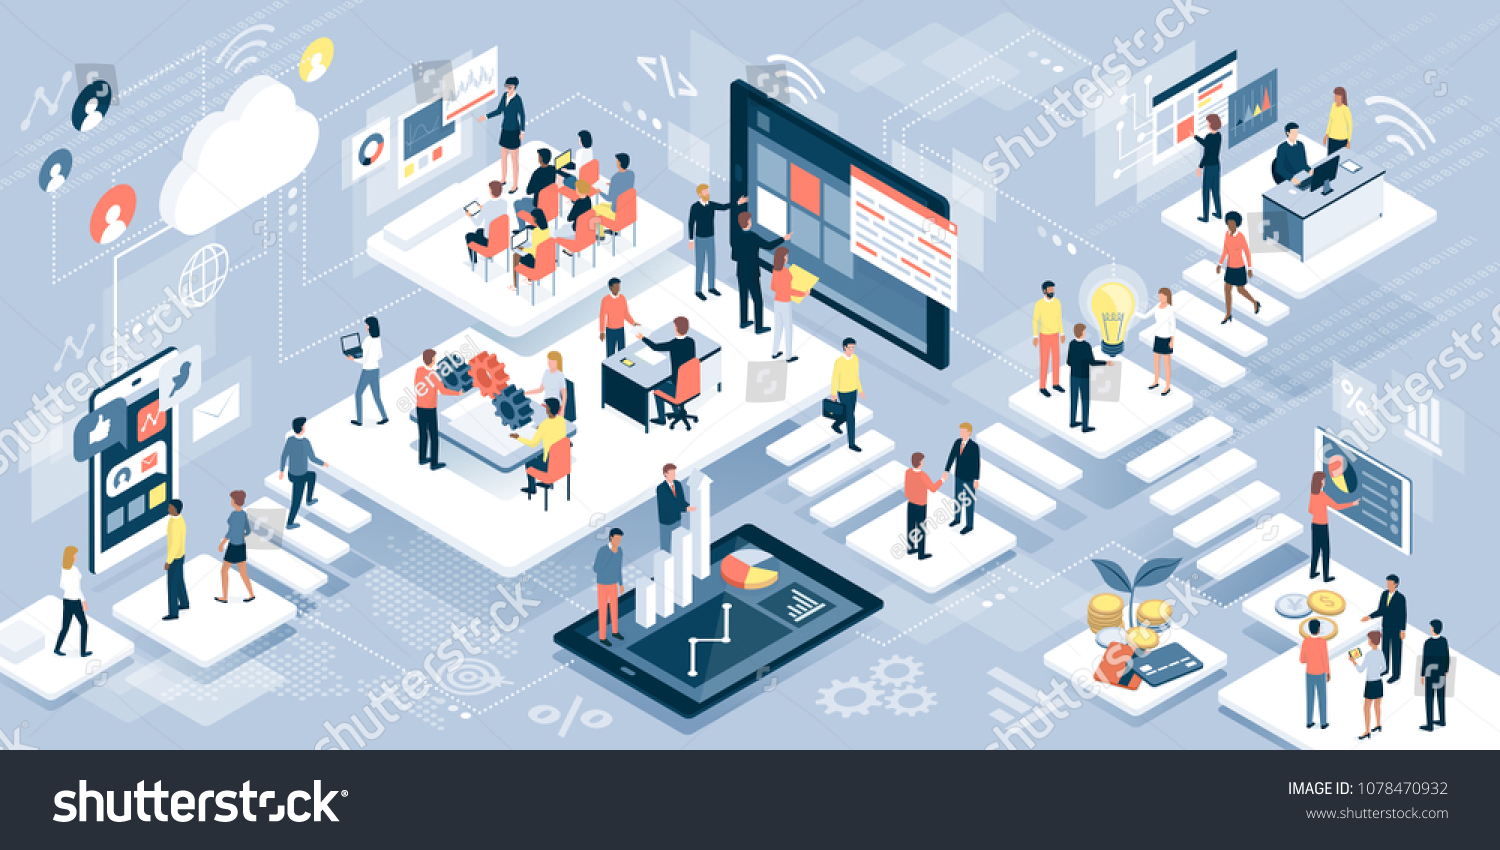 Isometric virtual office with business people working together and mobile devices: business management, online communication and finance concept #1078470932